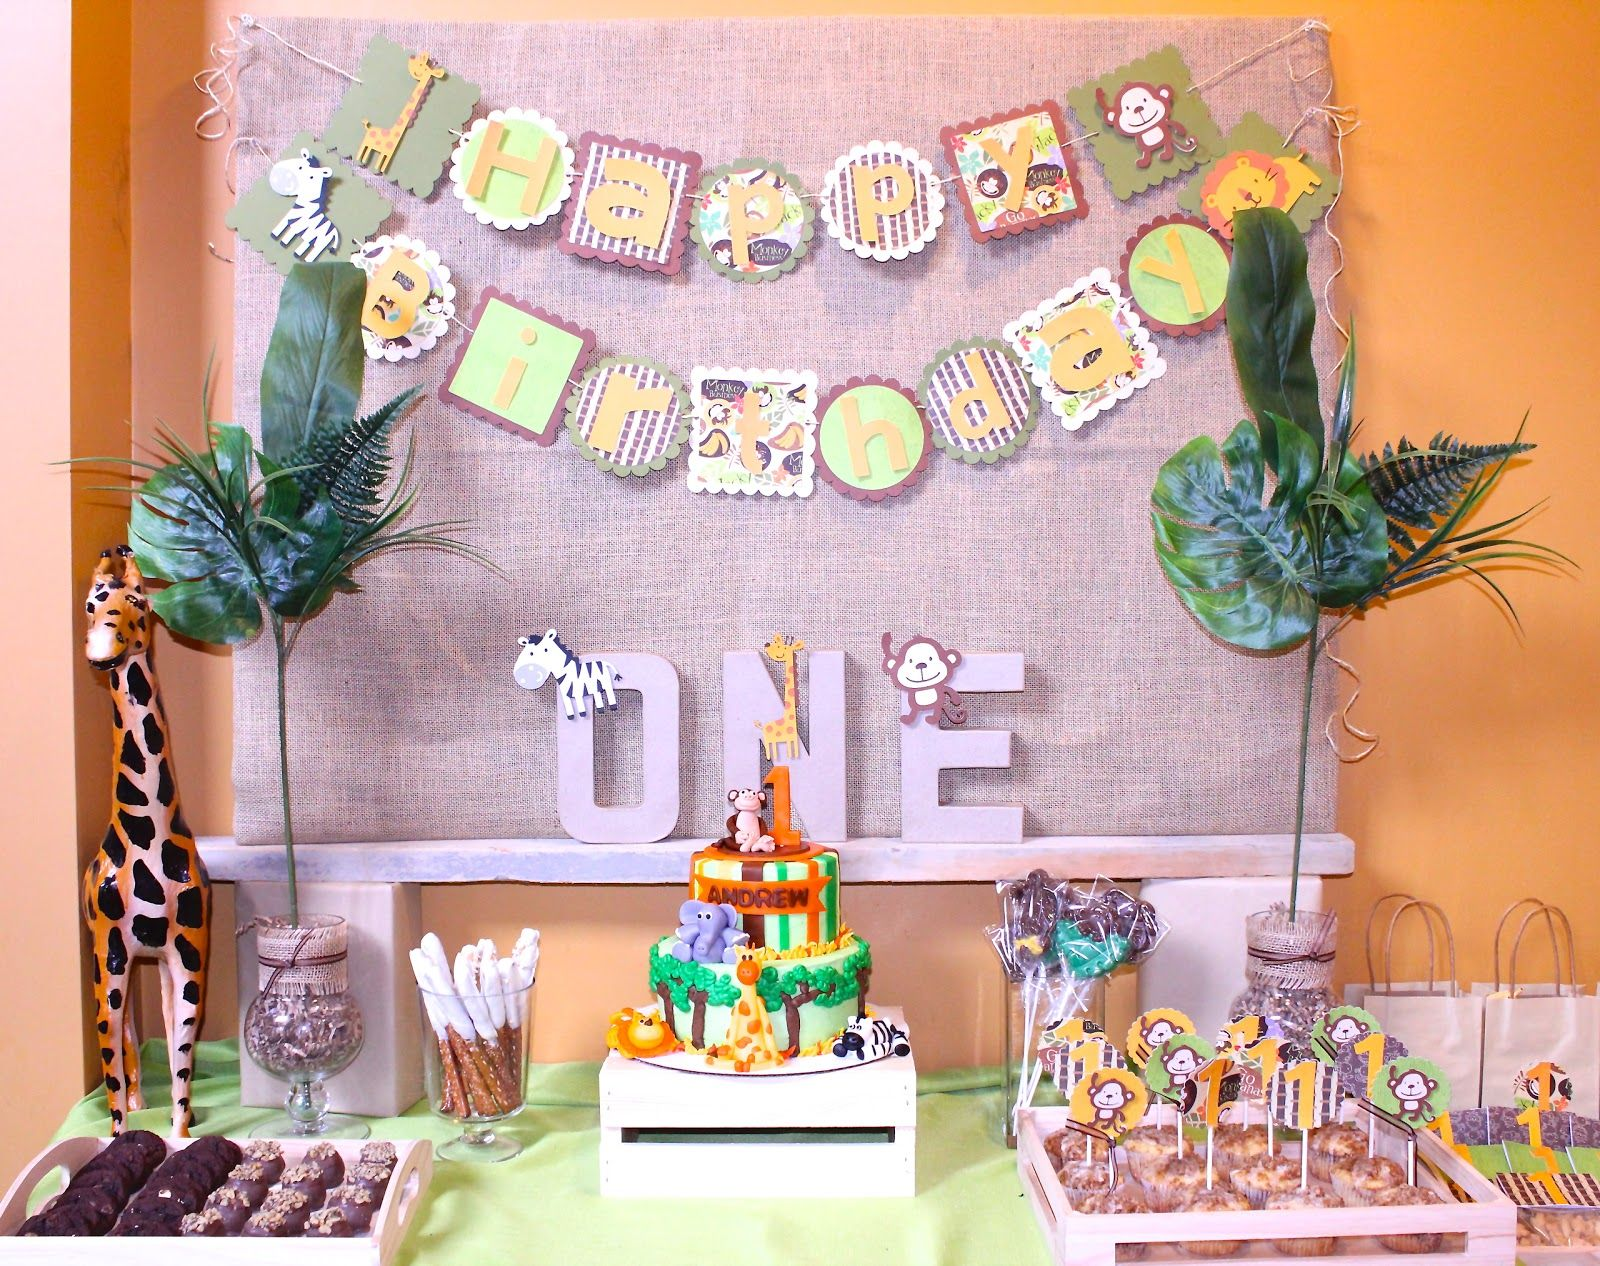 Safari jungle birthday party one year old party Kids Party Ideas